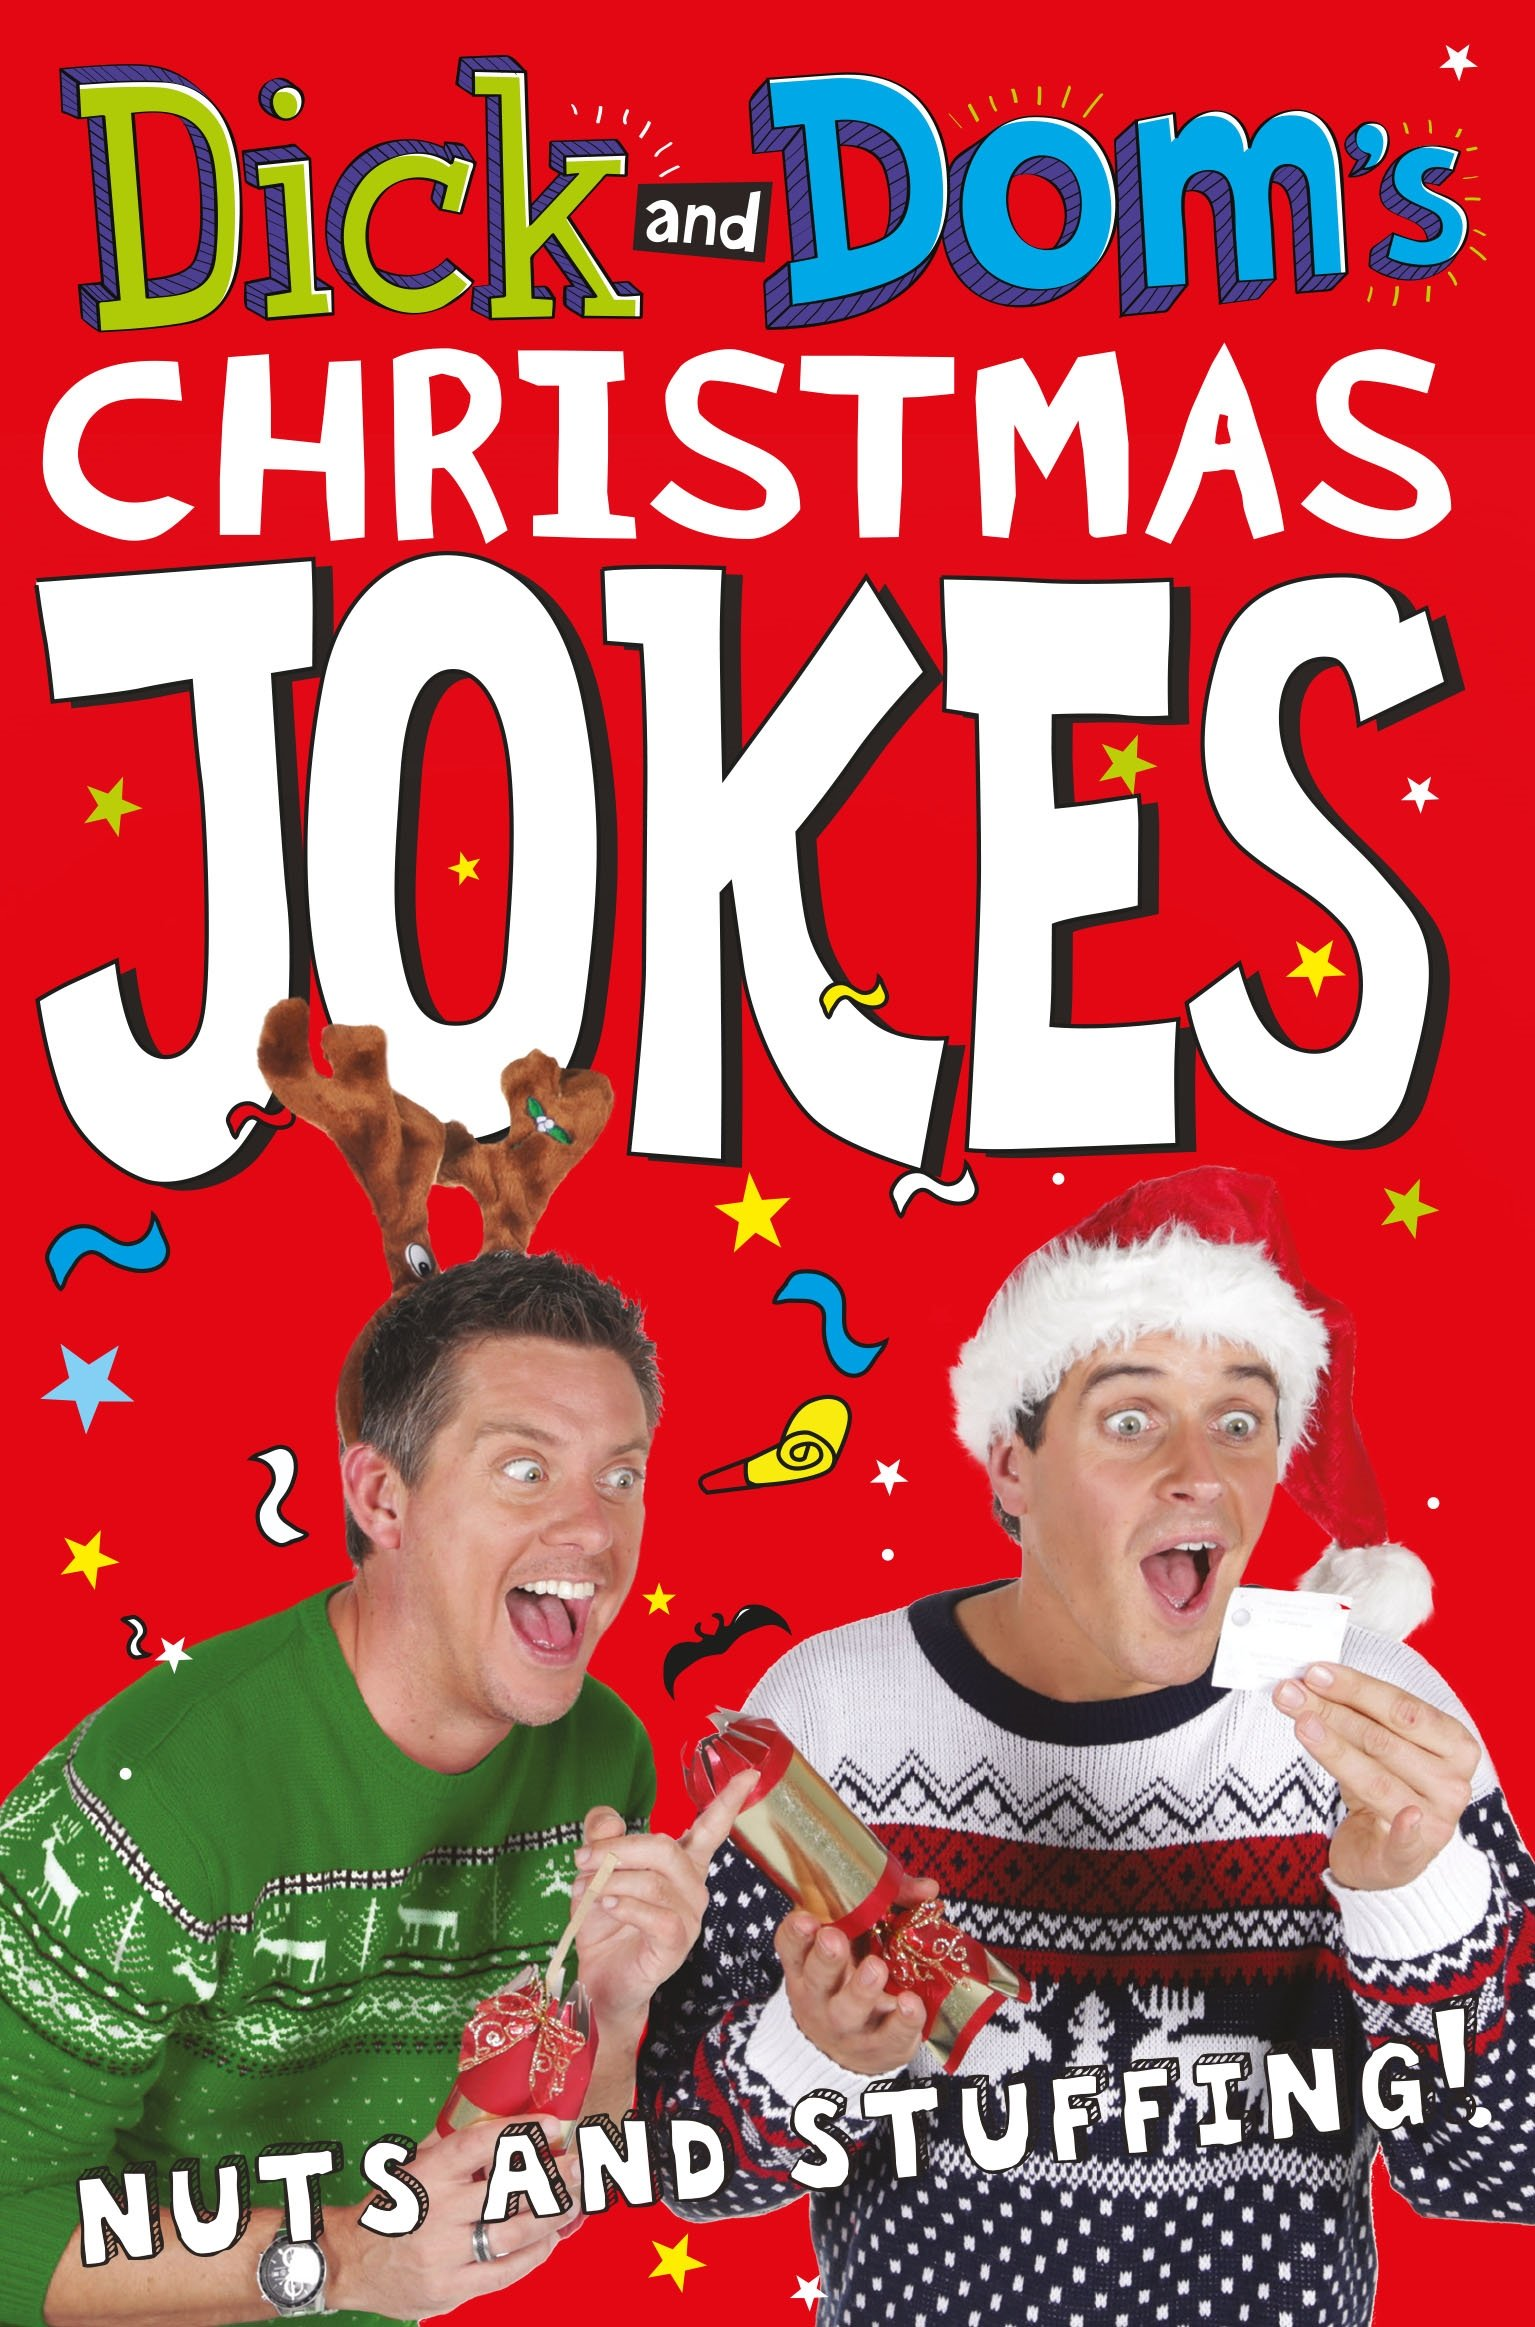 Dick and Dom's Christmas Jokes, Nuts and Stuffing! the funniest christmas joke book ever